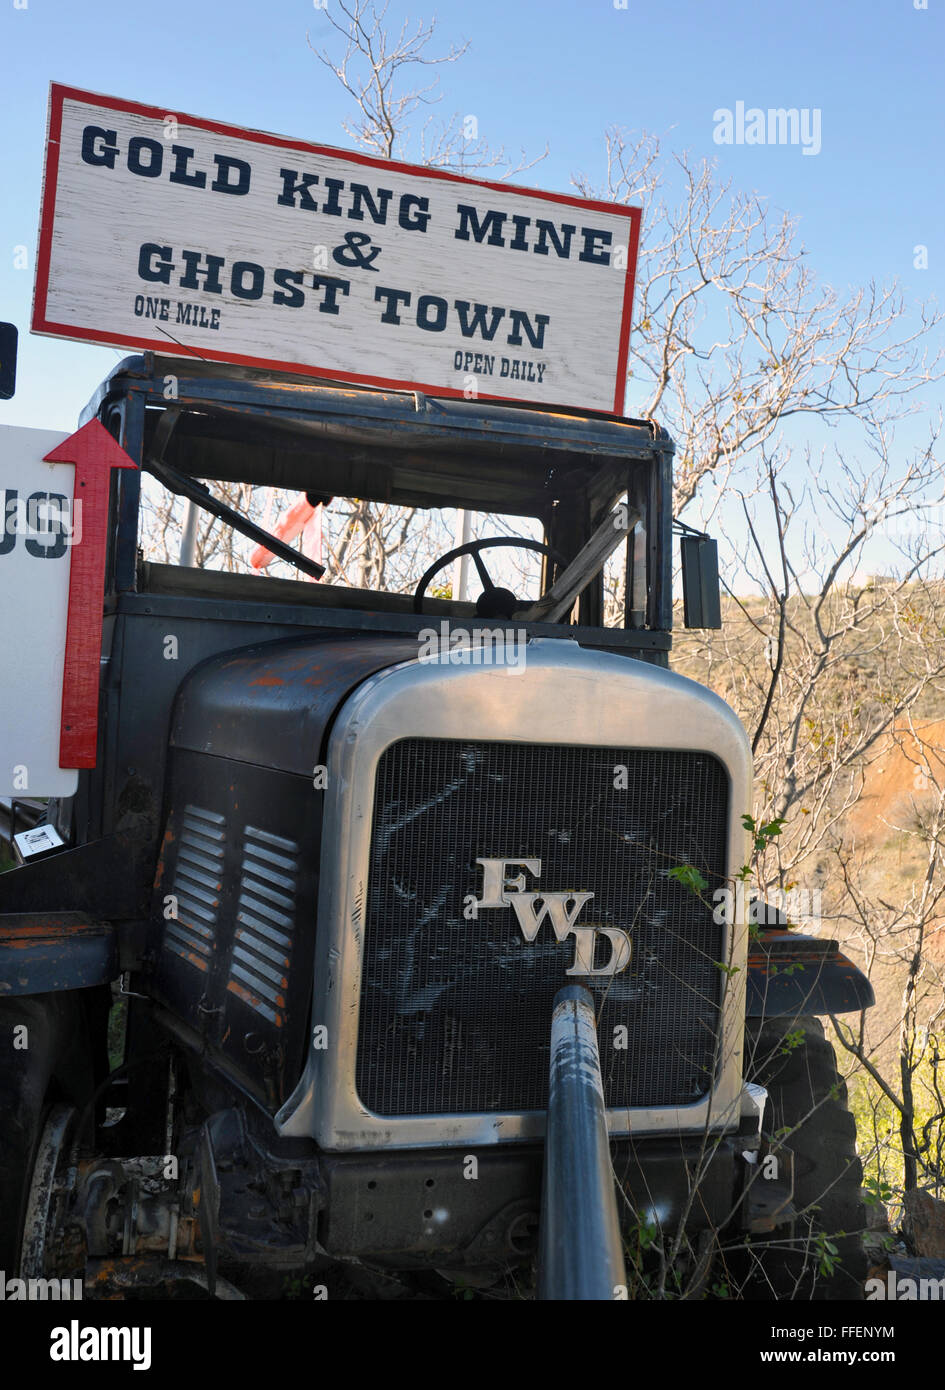 Gold King Mine truck Jerome Arizona.Founded 19th century on Cleopatra Hill overlooking Verde Valley, richest copper - Stock Image